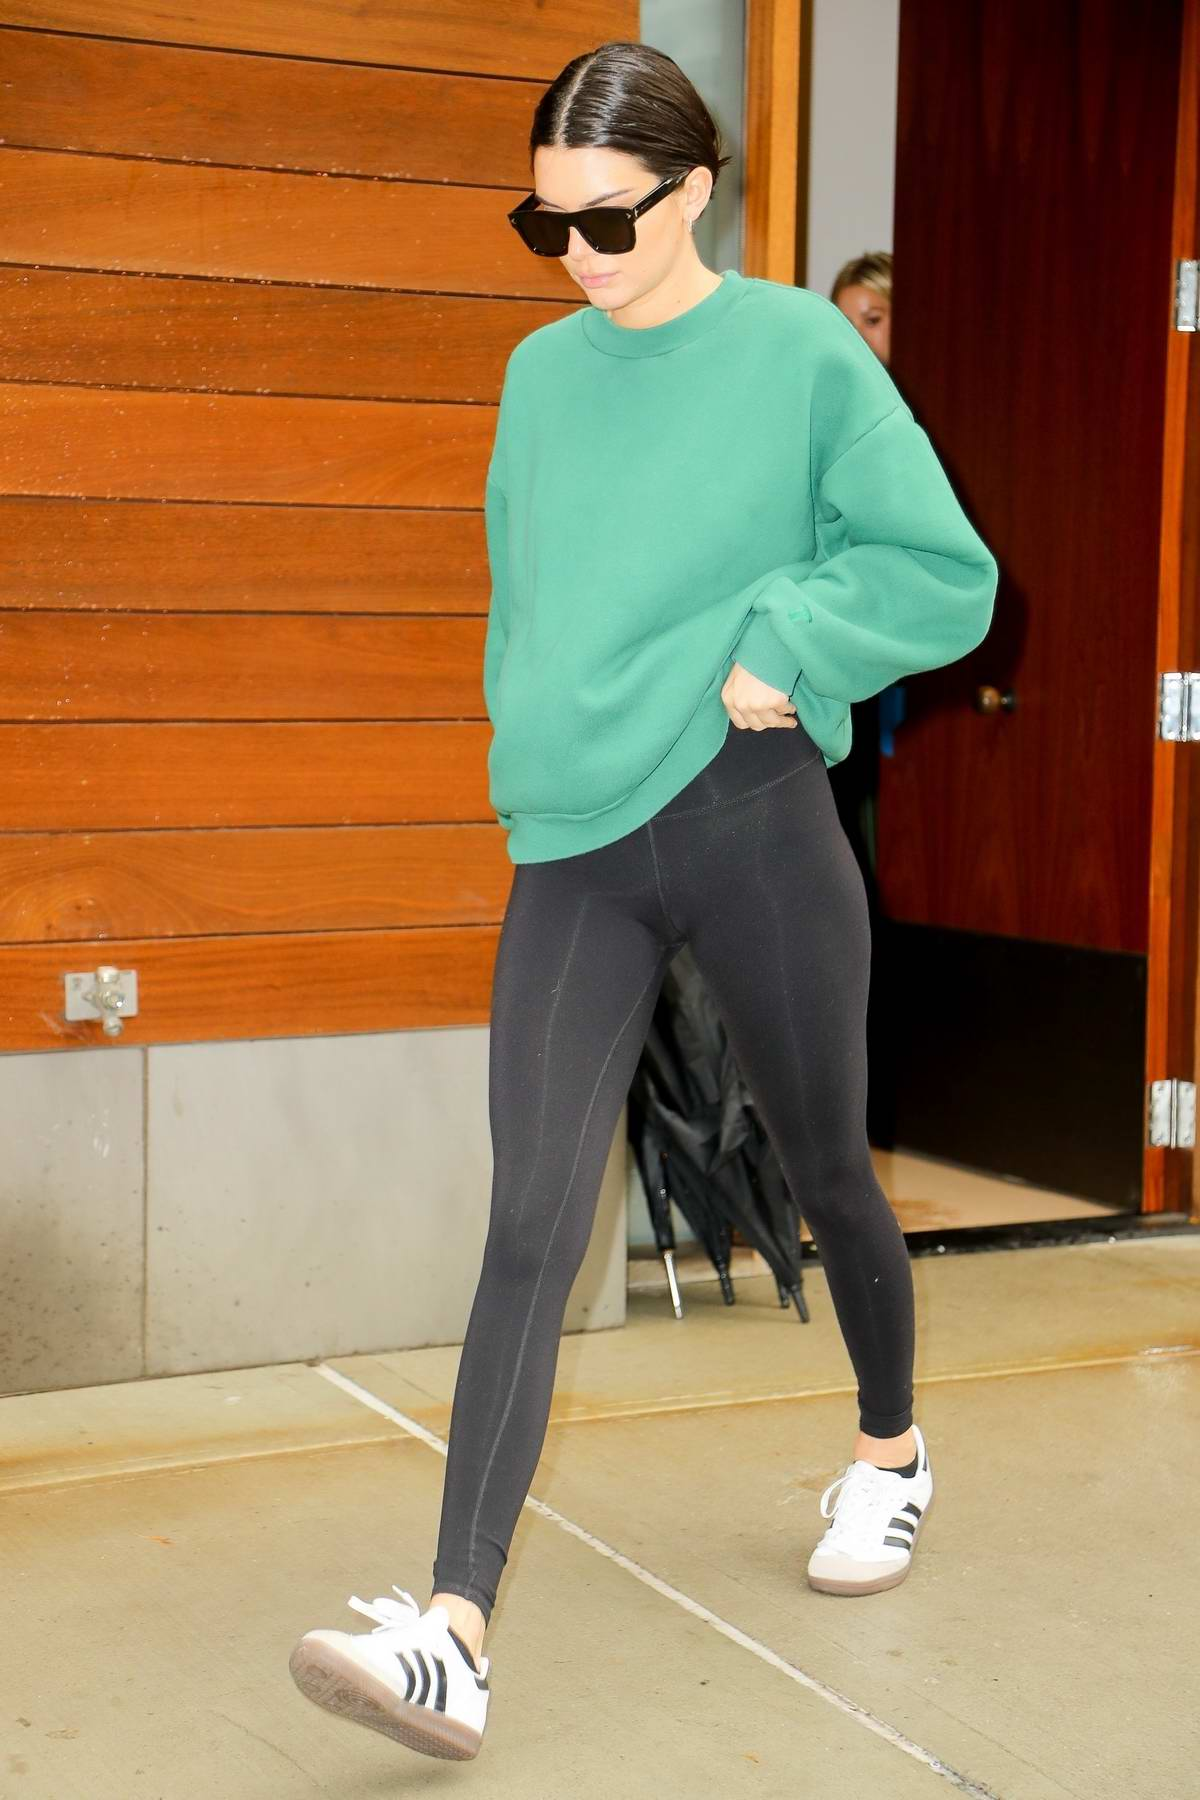 Kendall Jenner wears a green sweatshirt paired with black leggings while heading out in New York City